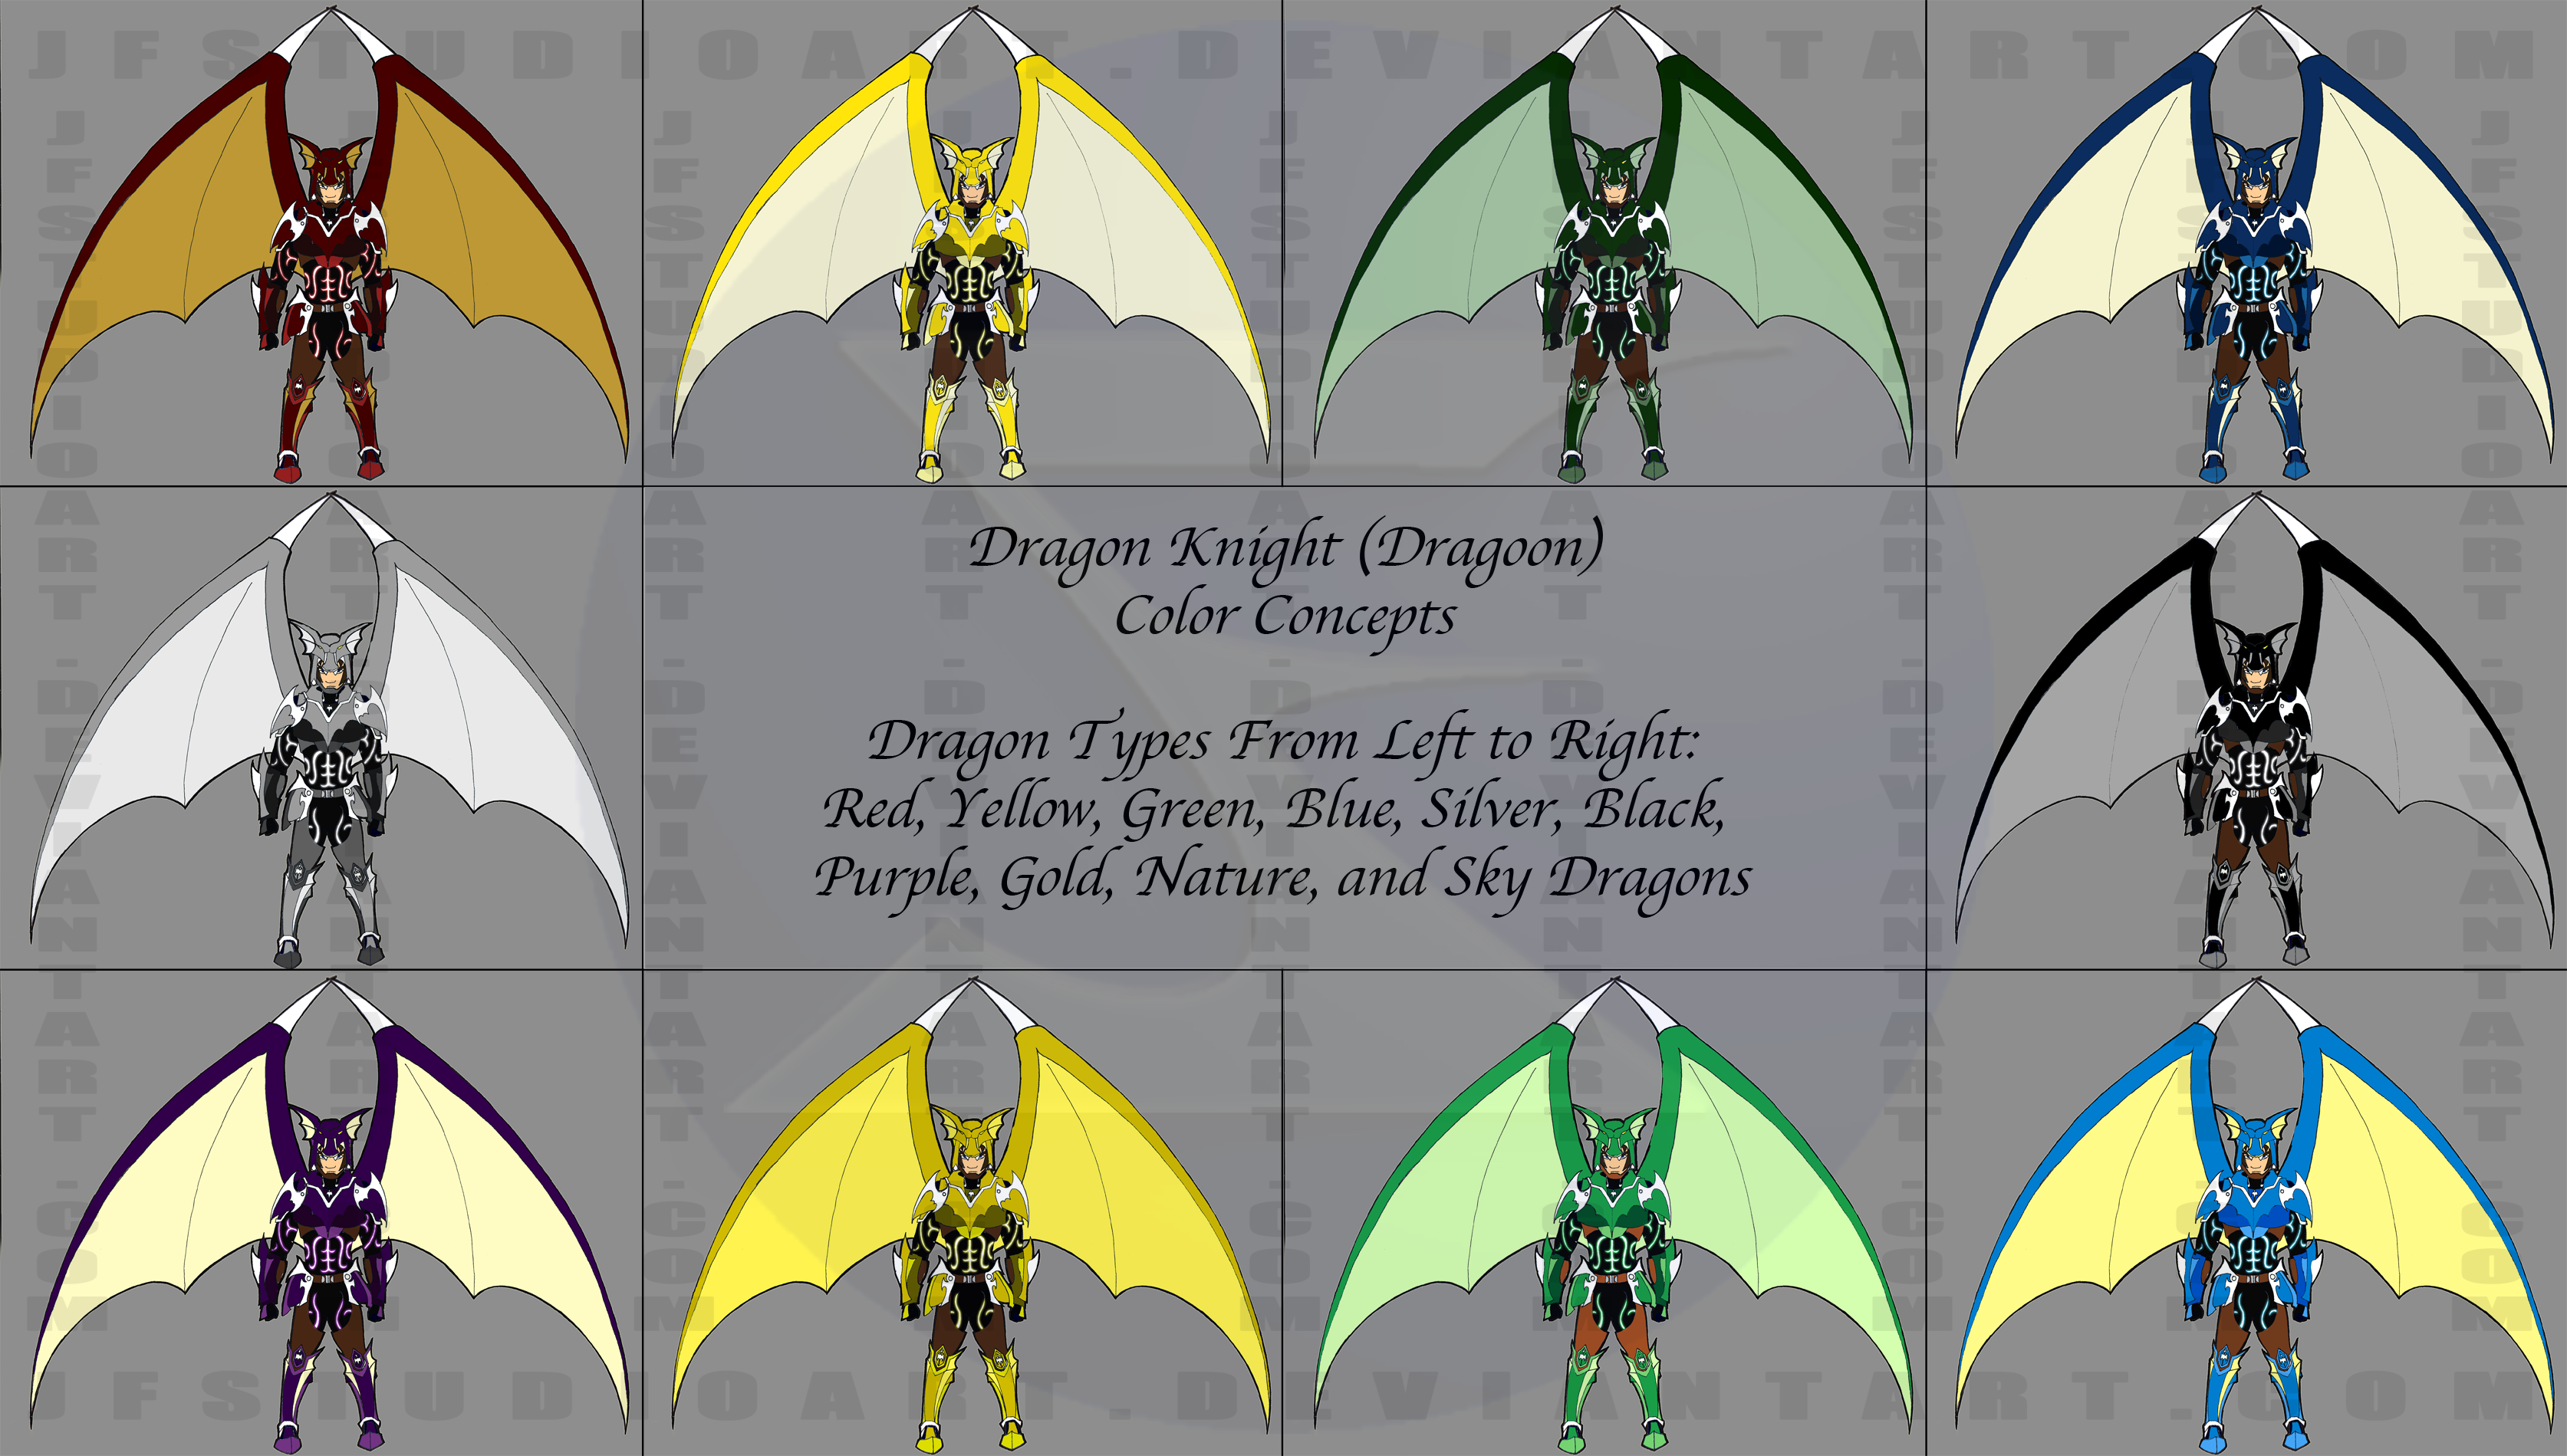 dragoon spirit surge armor by jfstudioart on deviantart